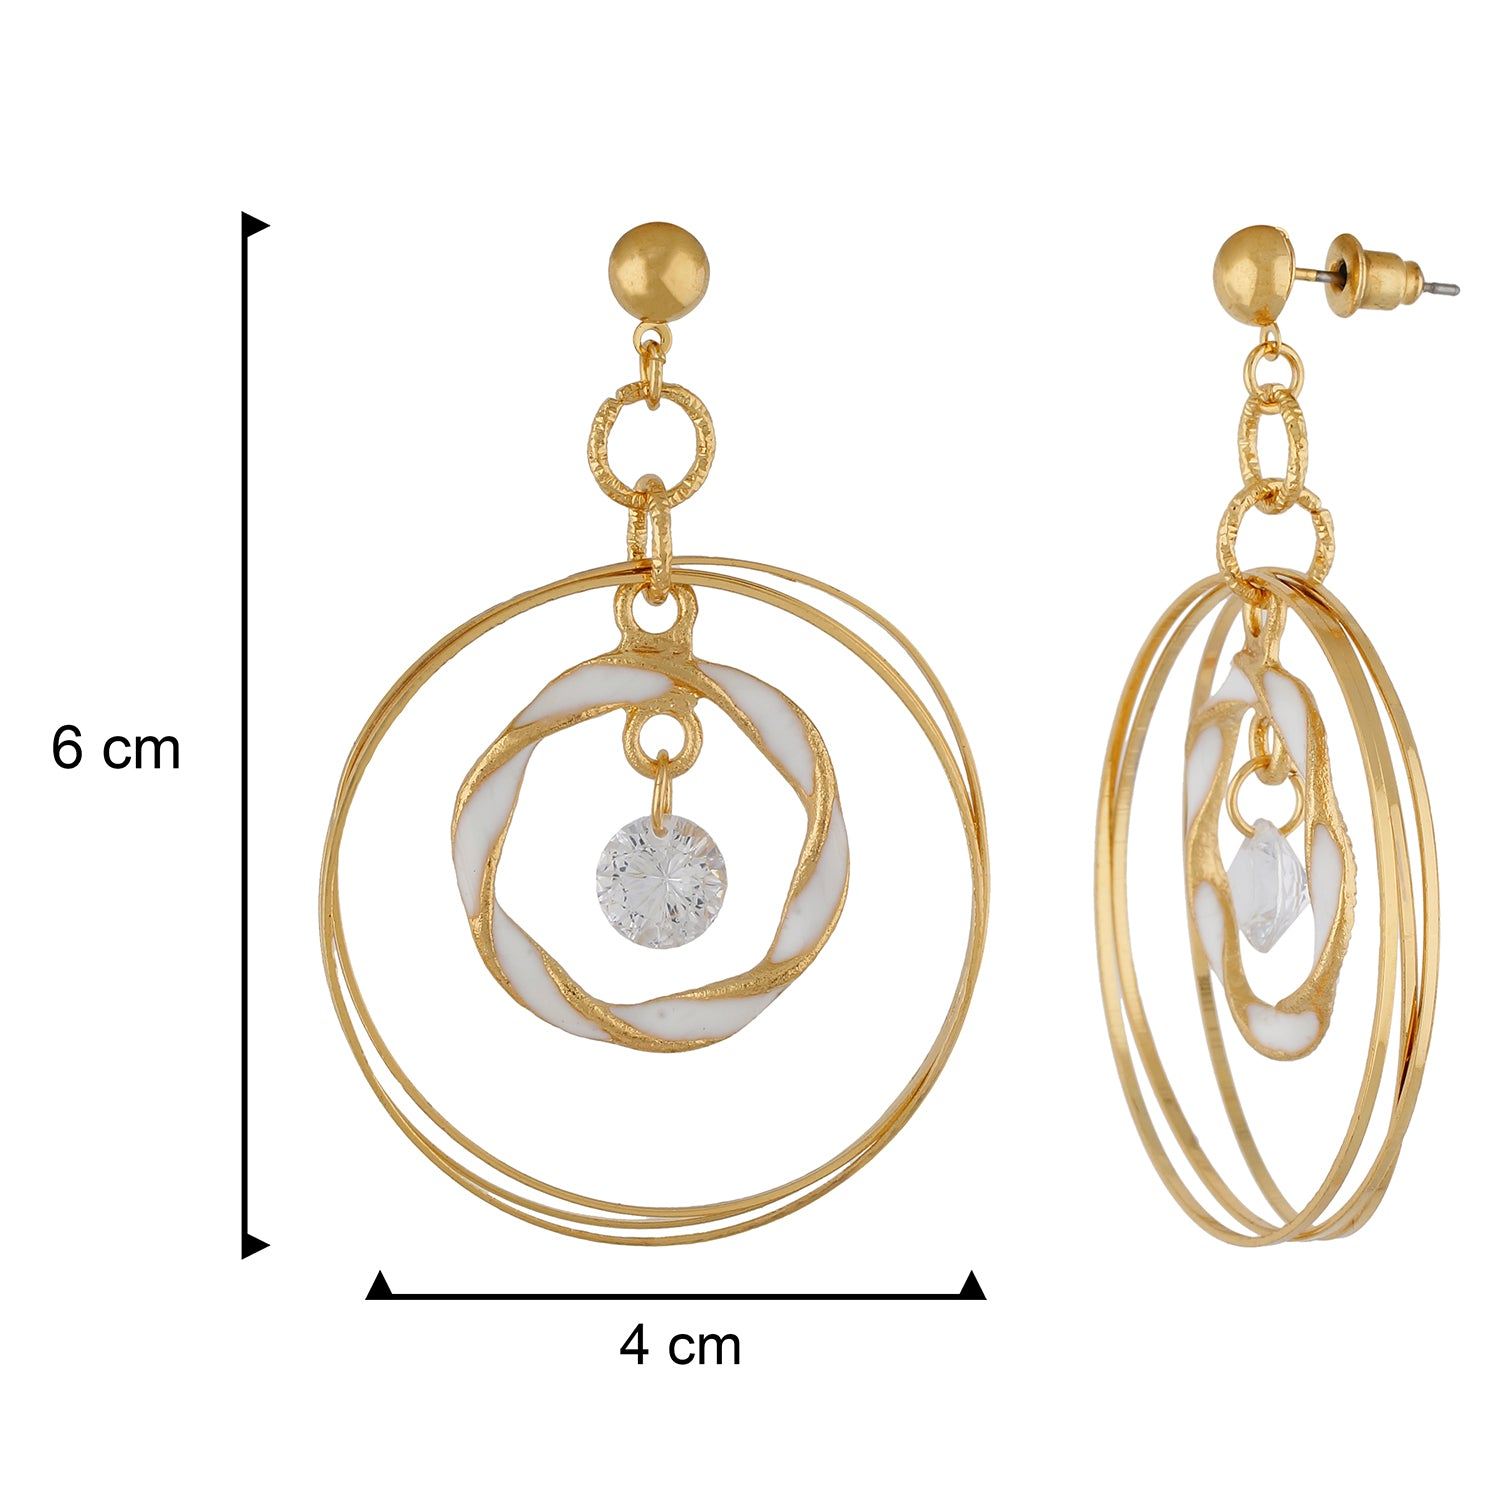 Remarkable White and Gold Colour Rings Design Earring for Girls and Women